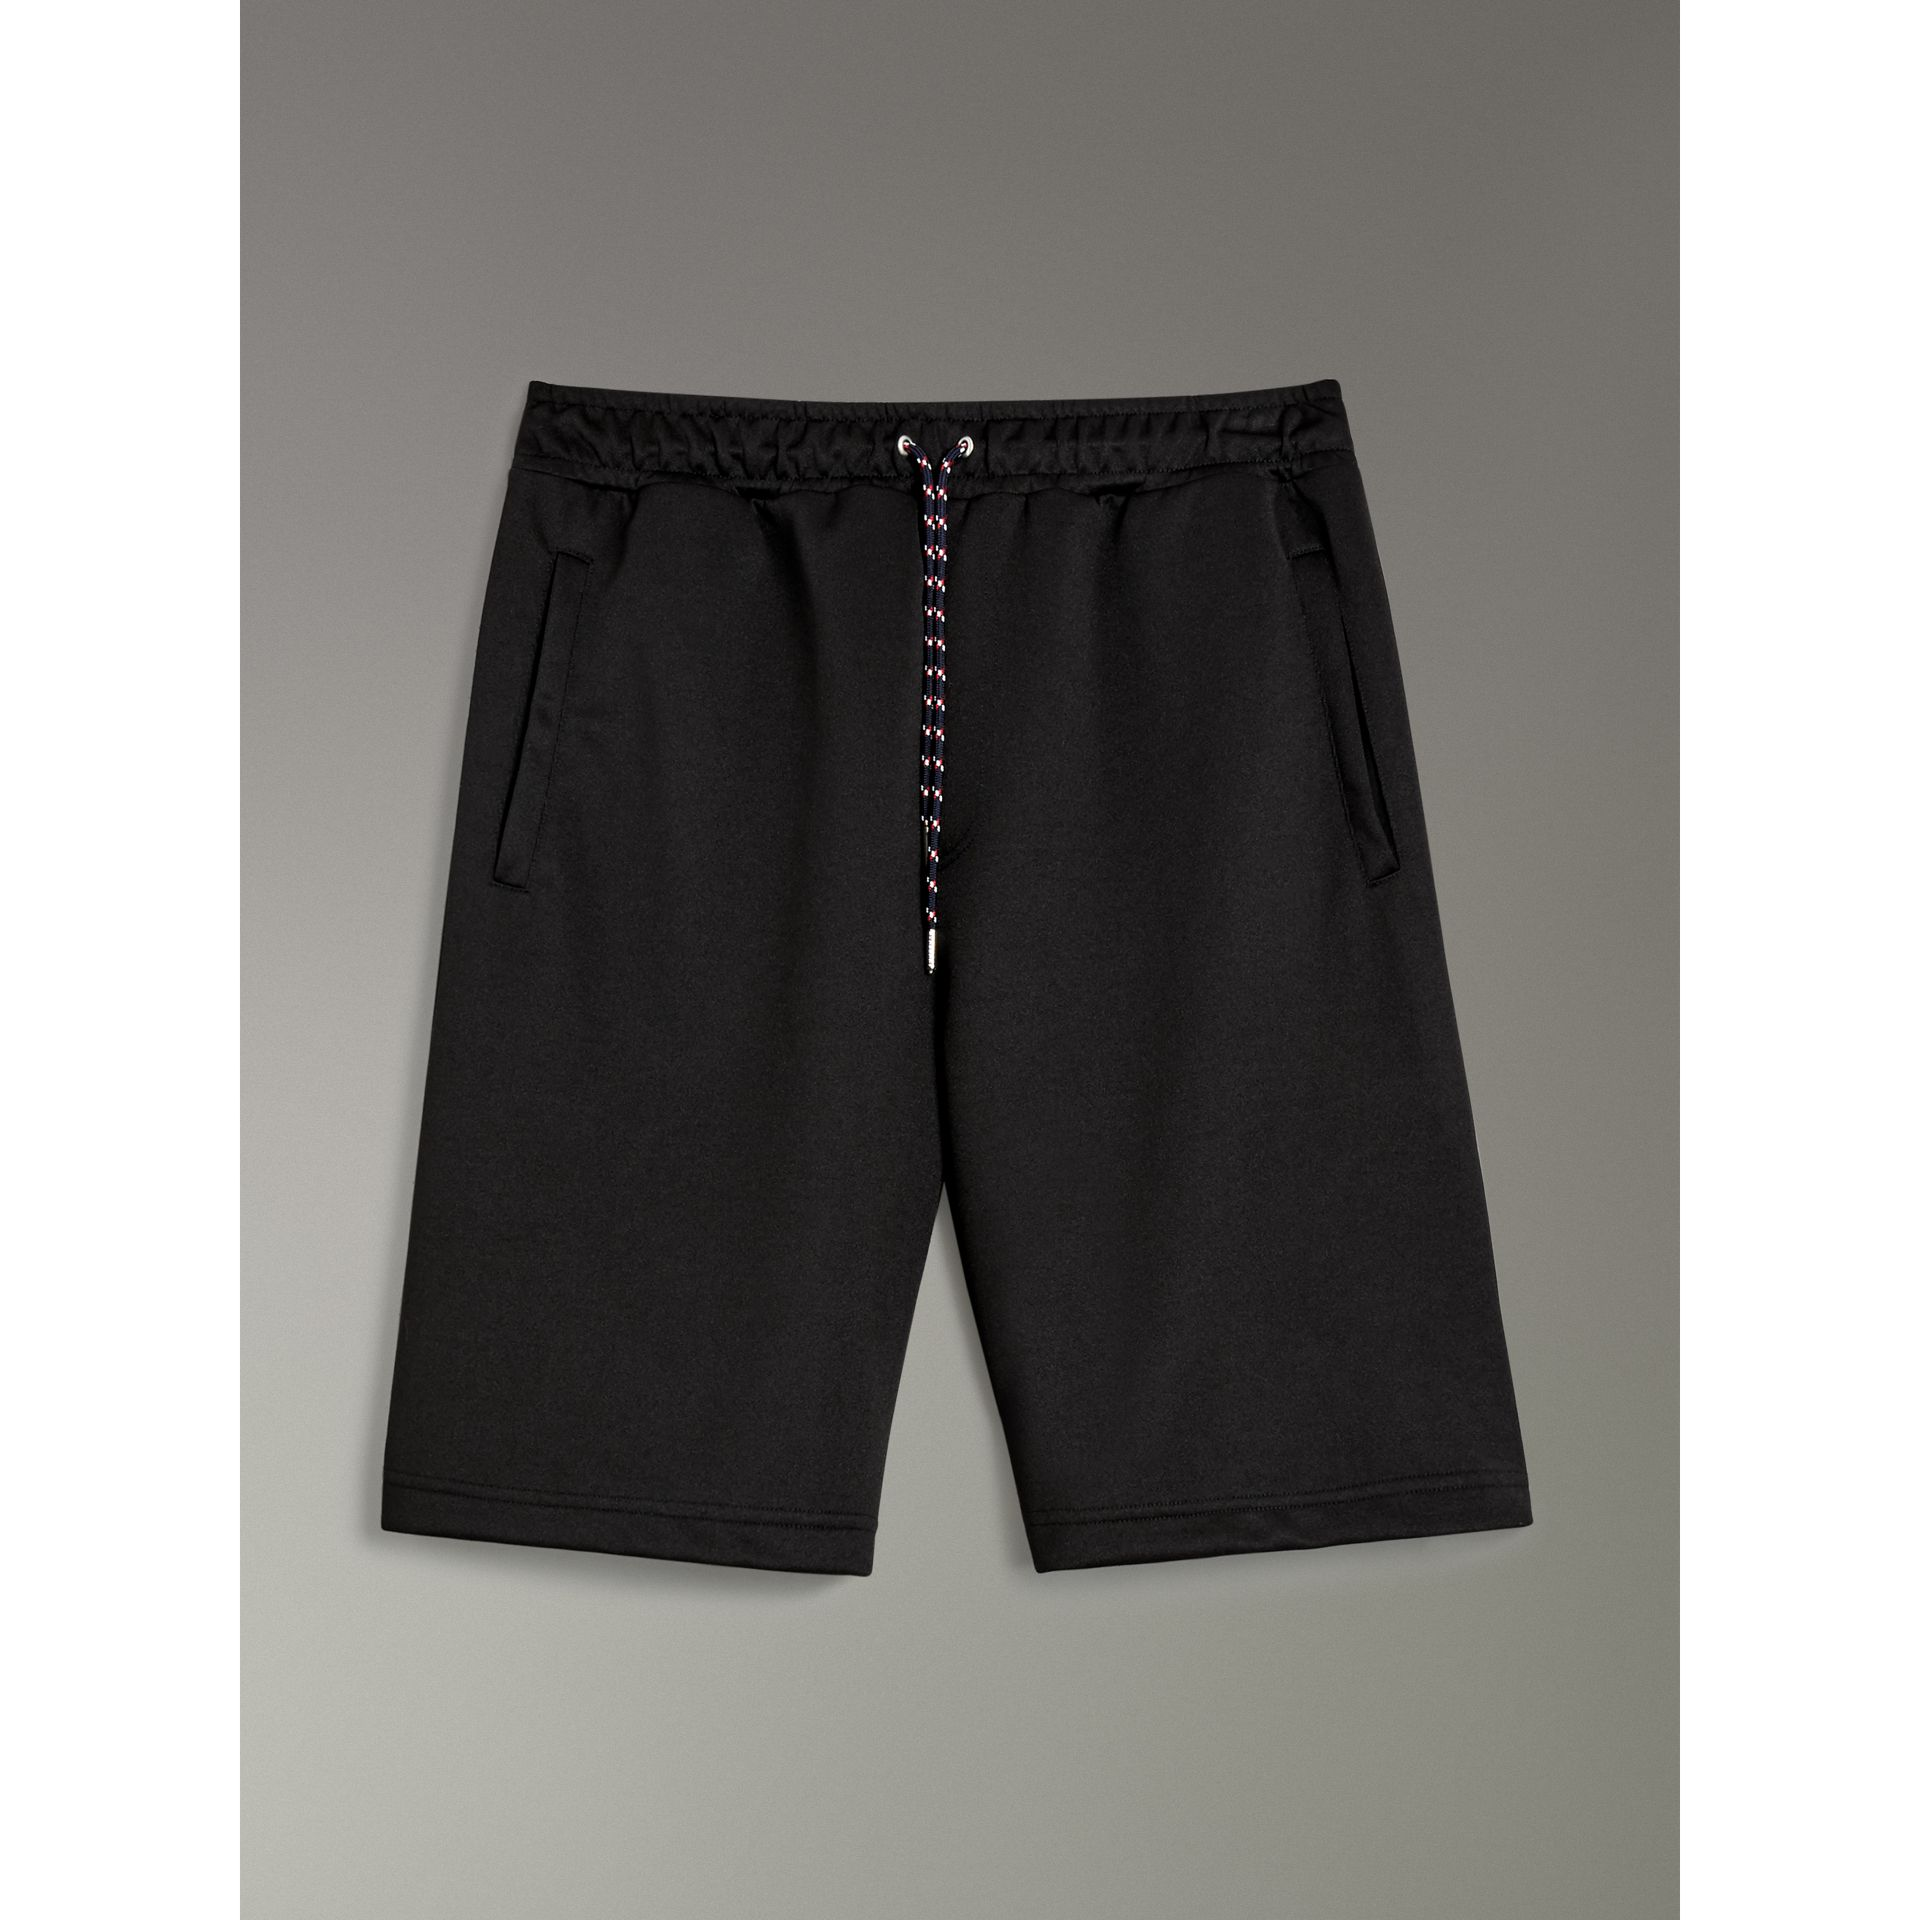 Cotton Blend Drawcord Shorts in Black - Men | Burberry - gallery image 3